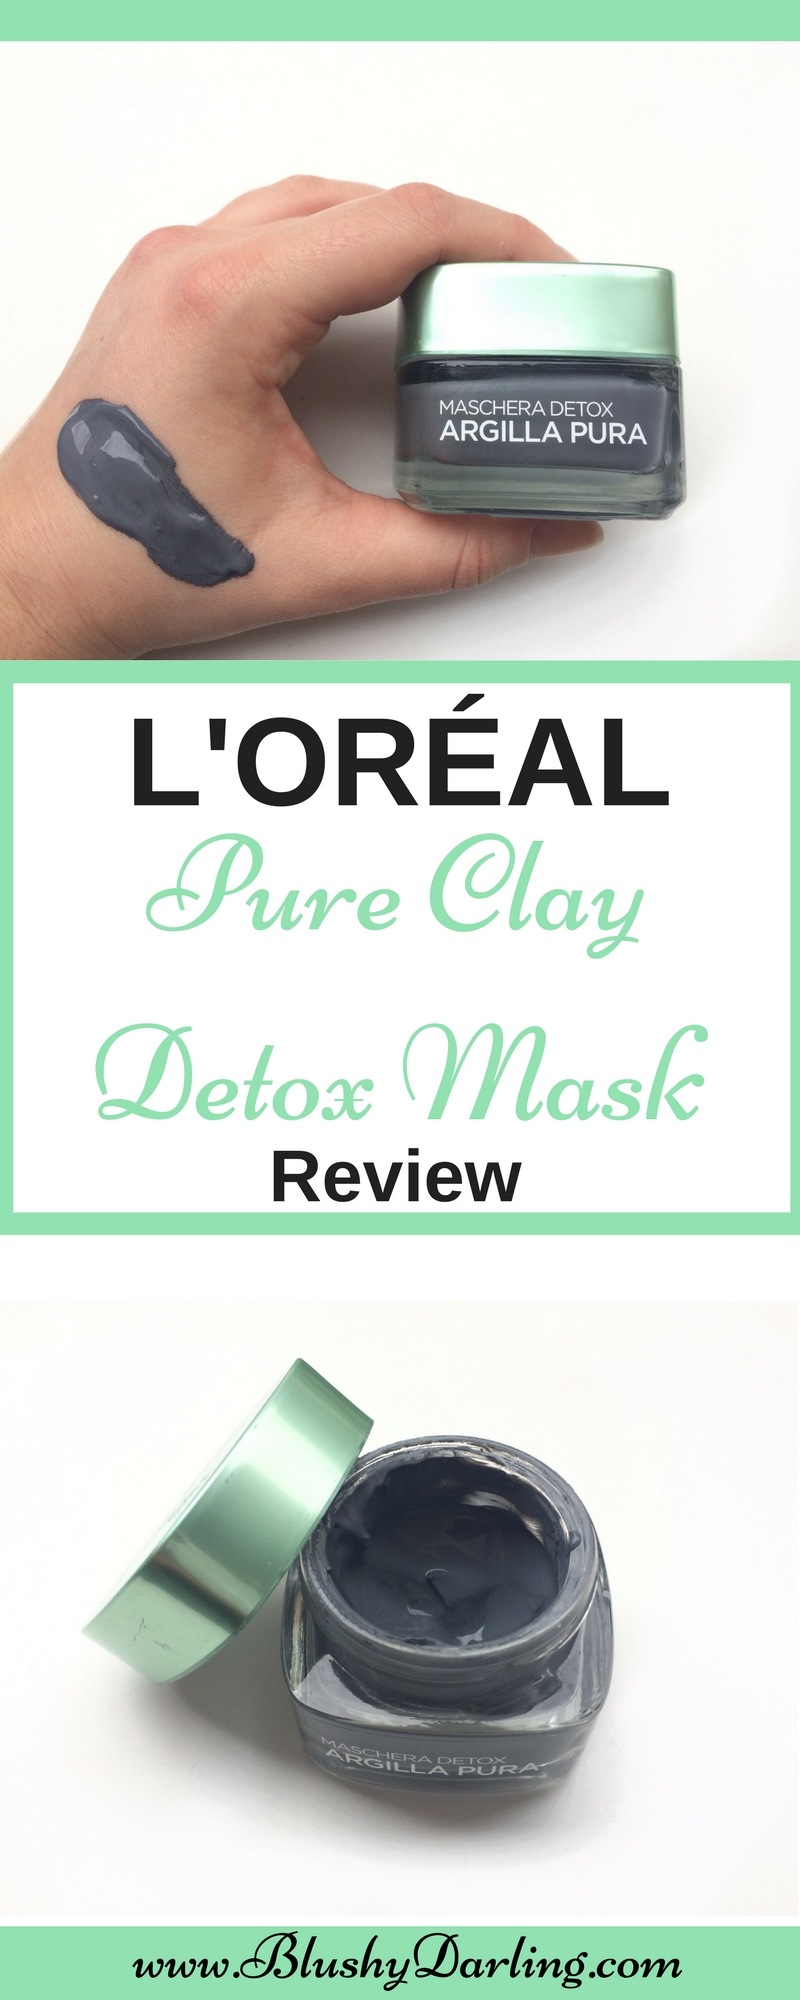 L'Oréal Pure Clay Detox Mask Review (1).jpg